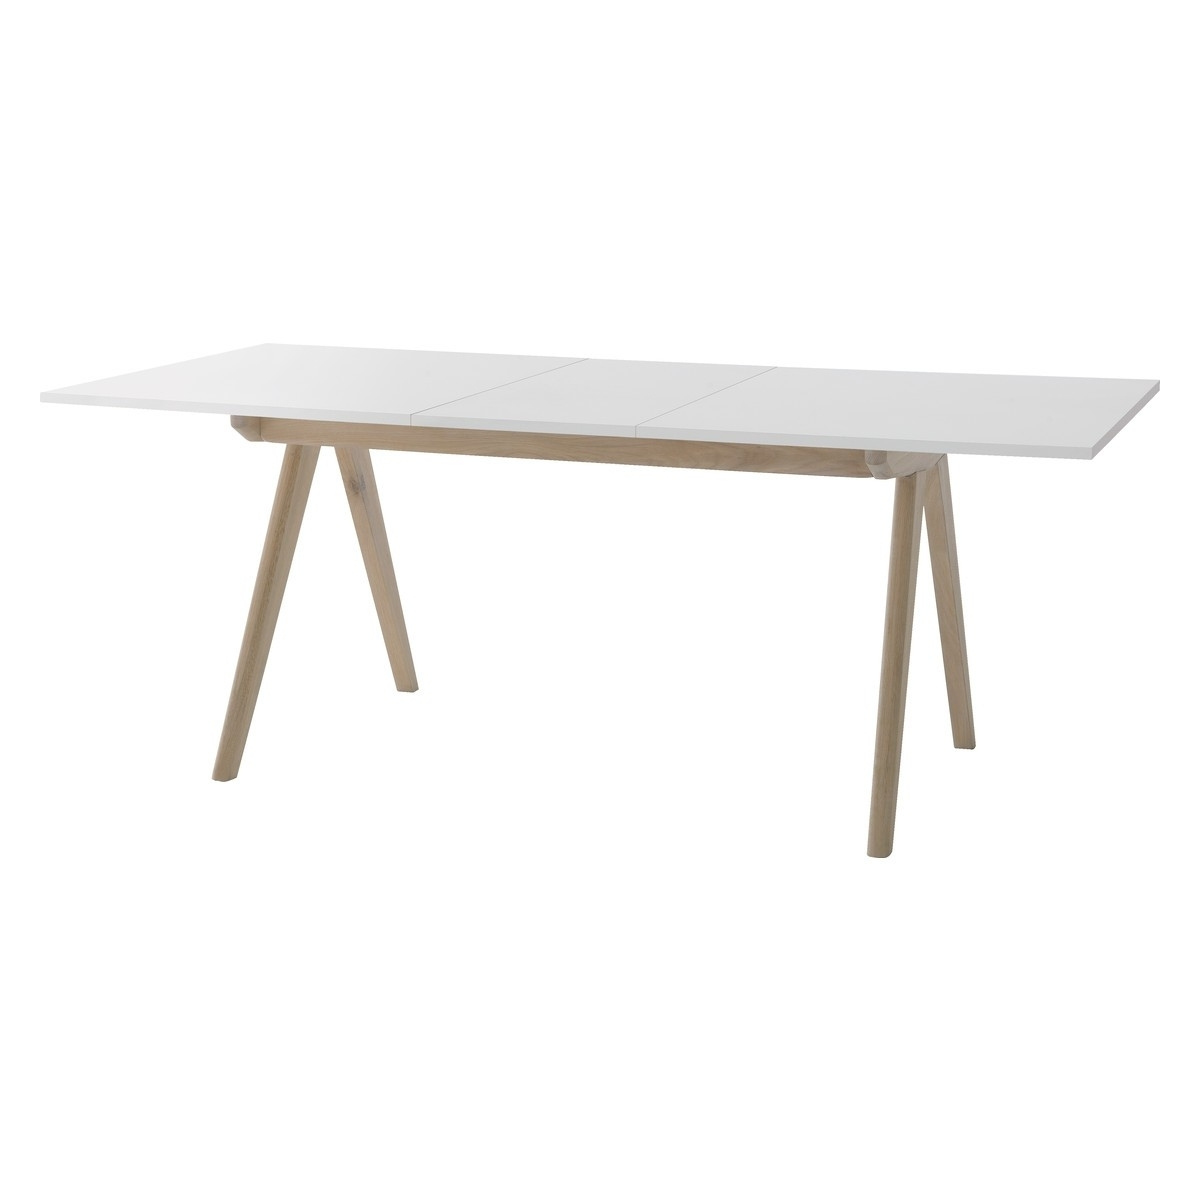 Jerry 4-8 Seat White Extending Dining Table